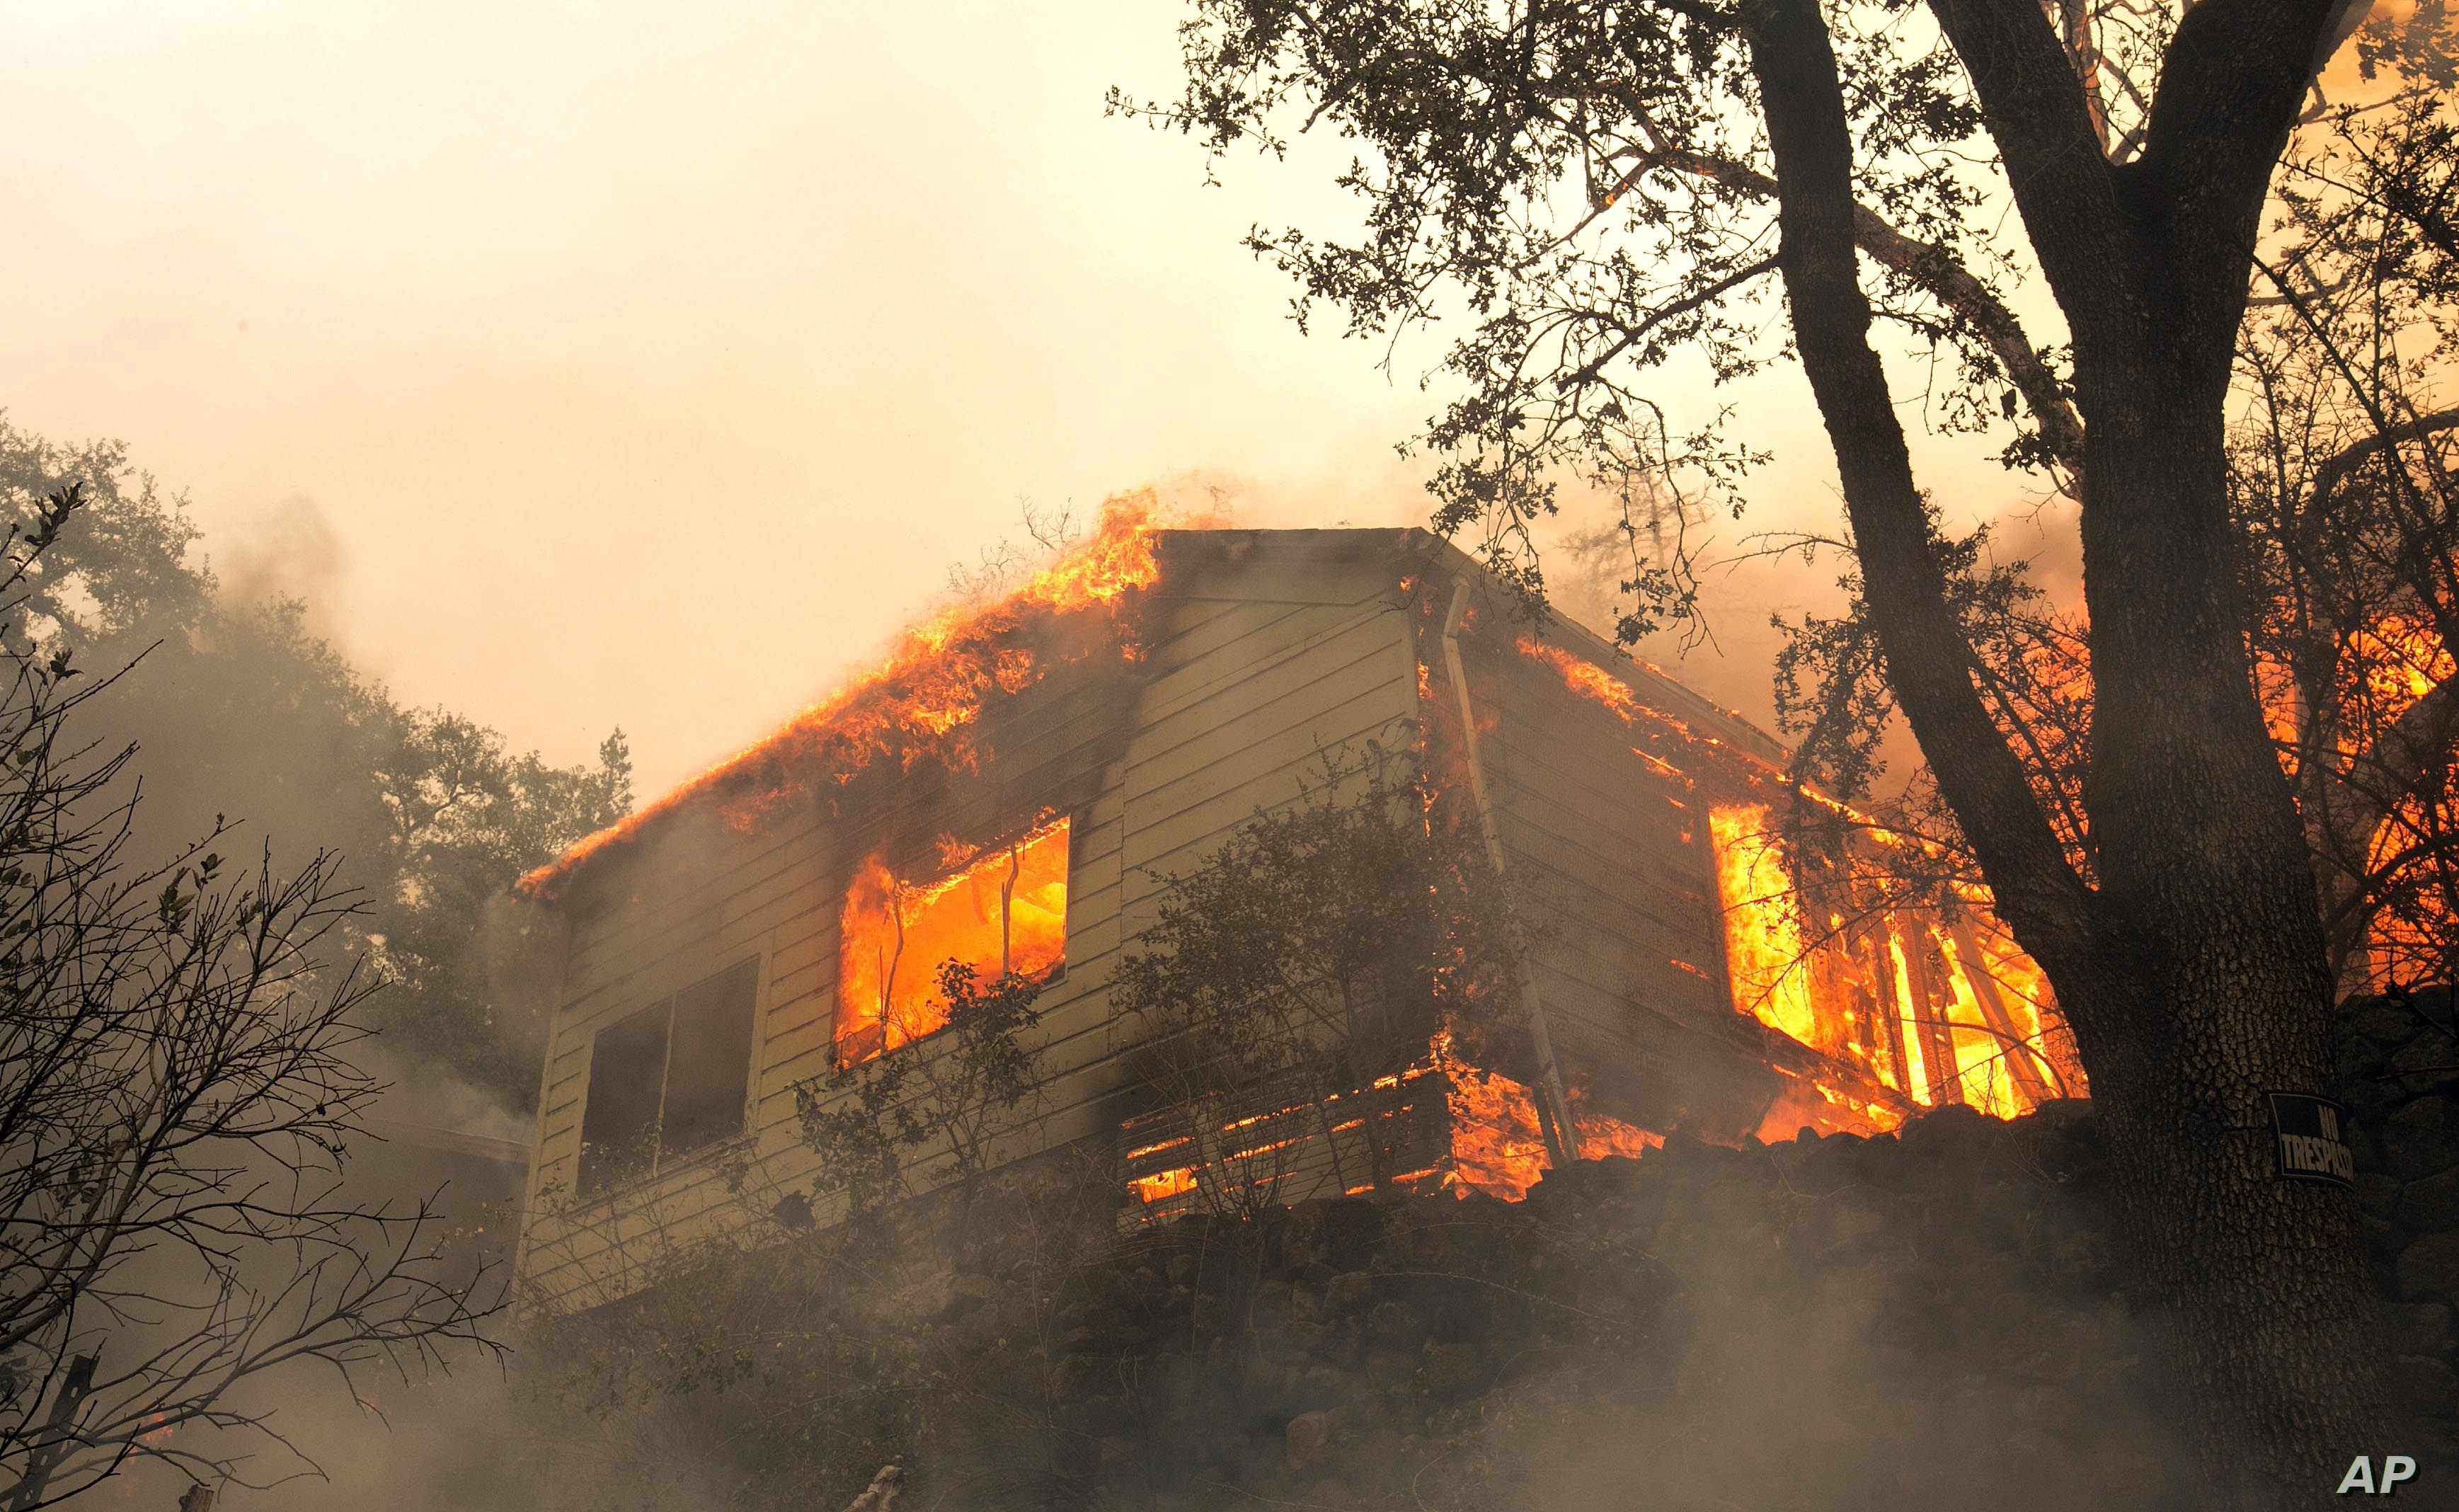 Flames from a massive wildfire consume a home on the Silverado Trail, east of Napa, Calif., Oct. 9, 2017.